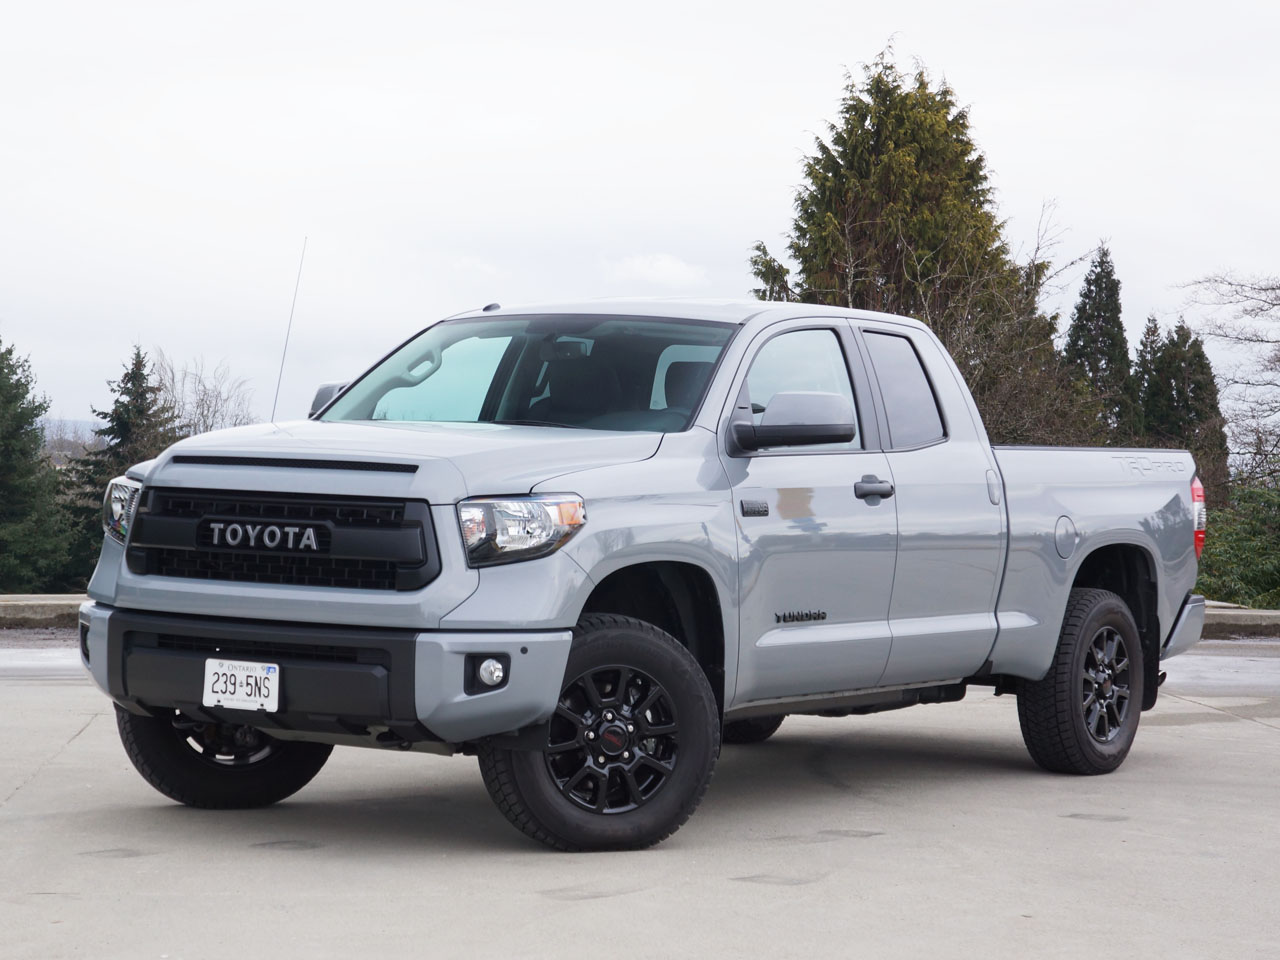 2017 Toyota Tundra Double Cab TRD Pro | The Car Magazine